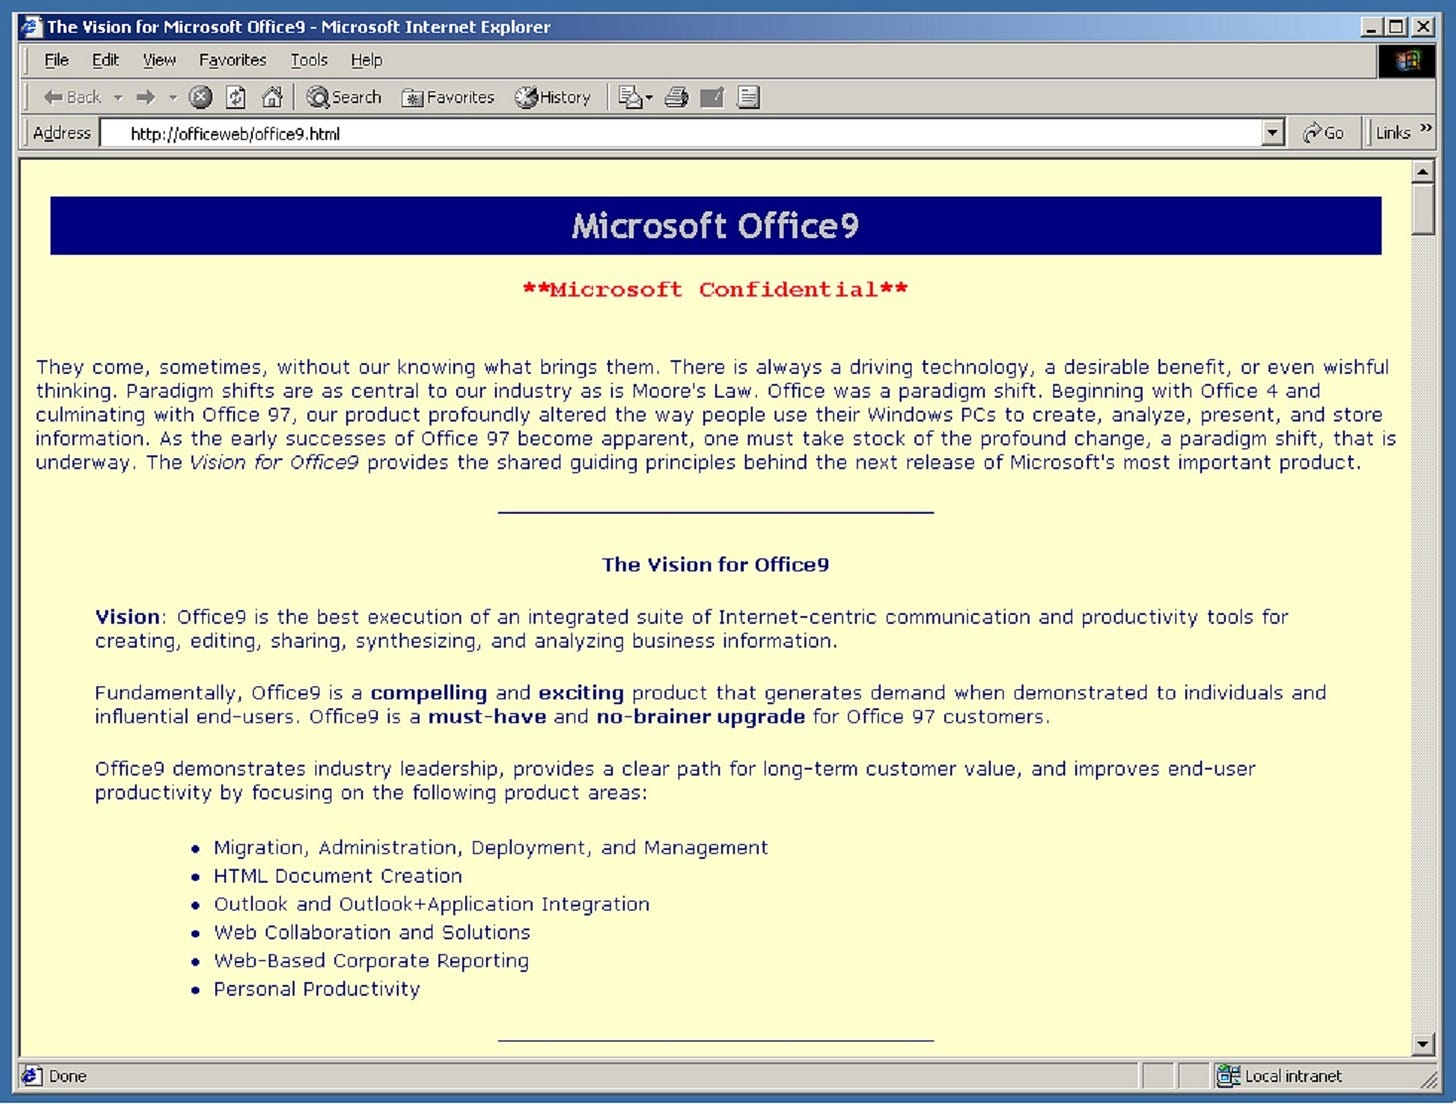 Office9 vision displaying in a vintage browser.